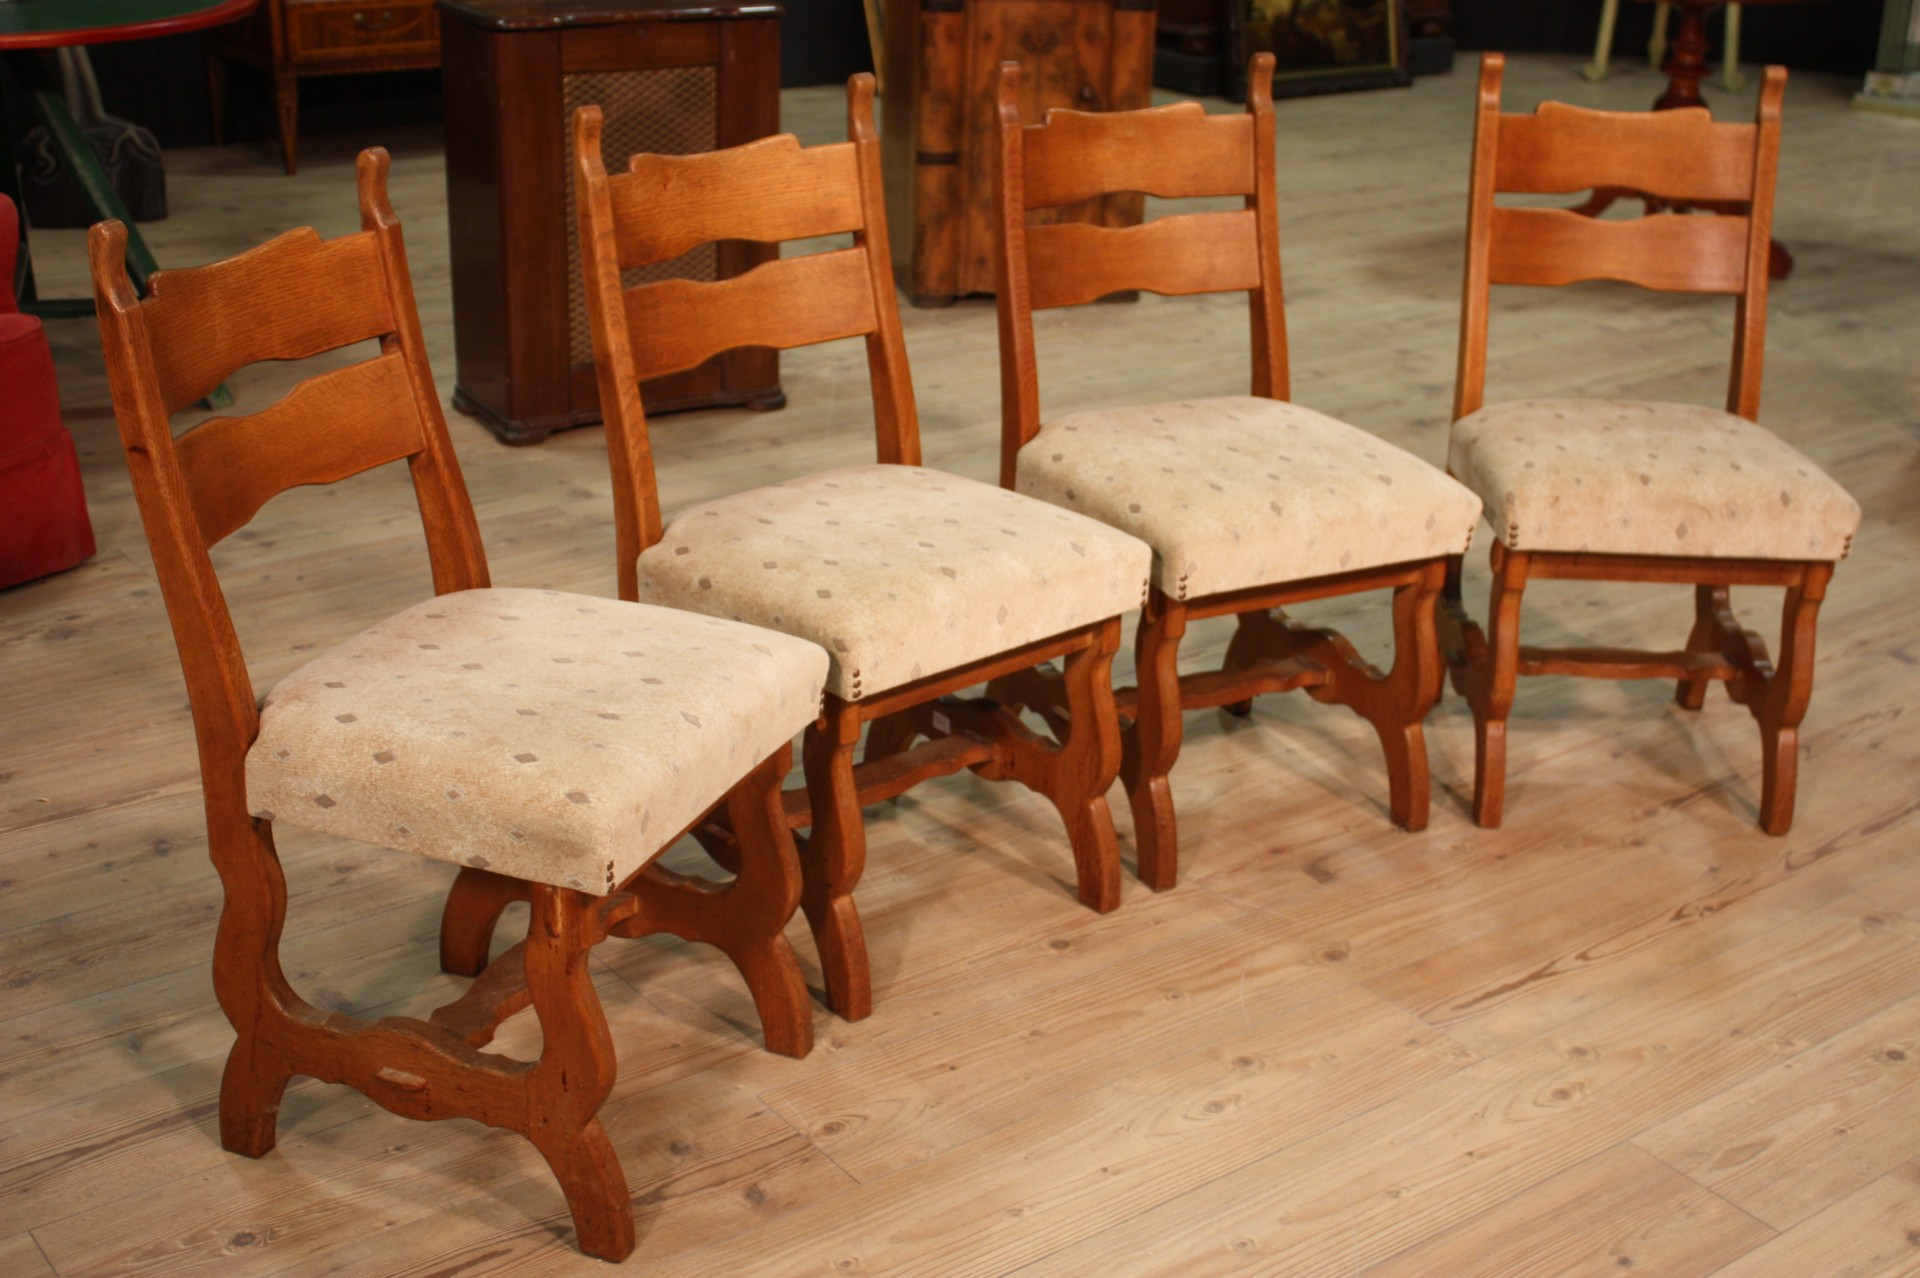 Details about Group 4 chairs rustic armchairs wood oak antique style 900  living room seats